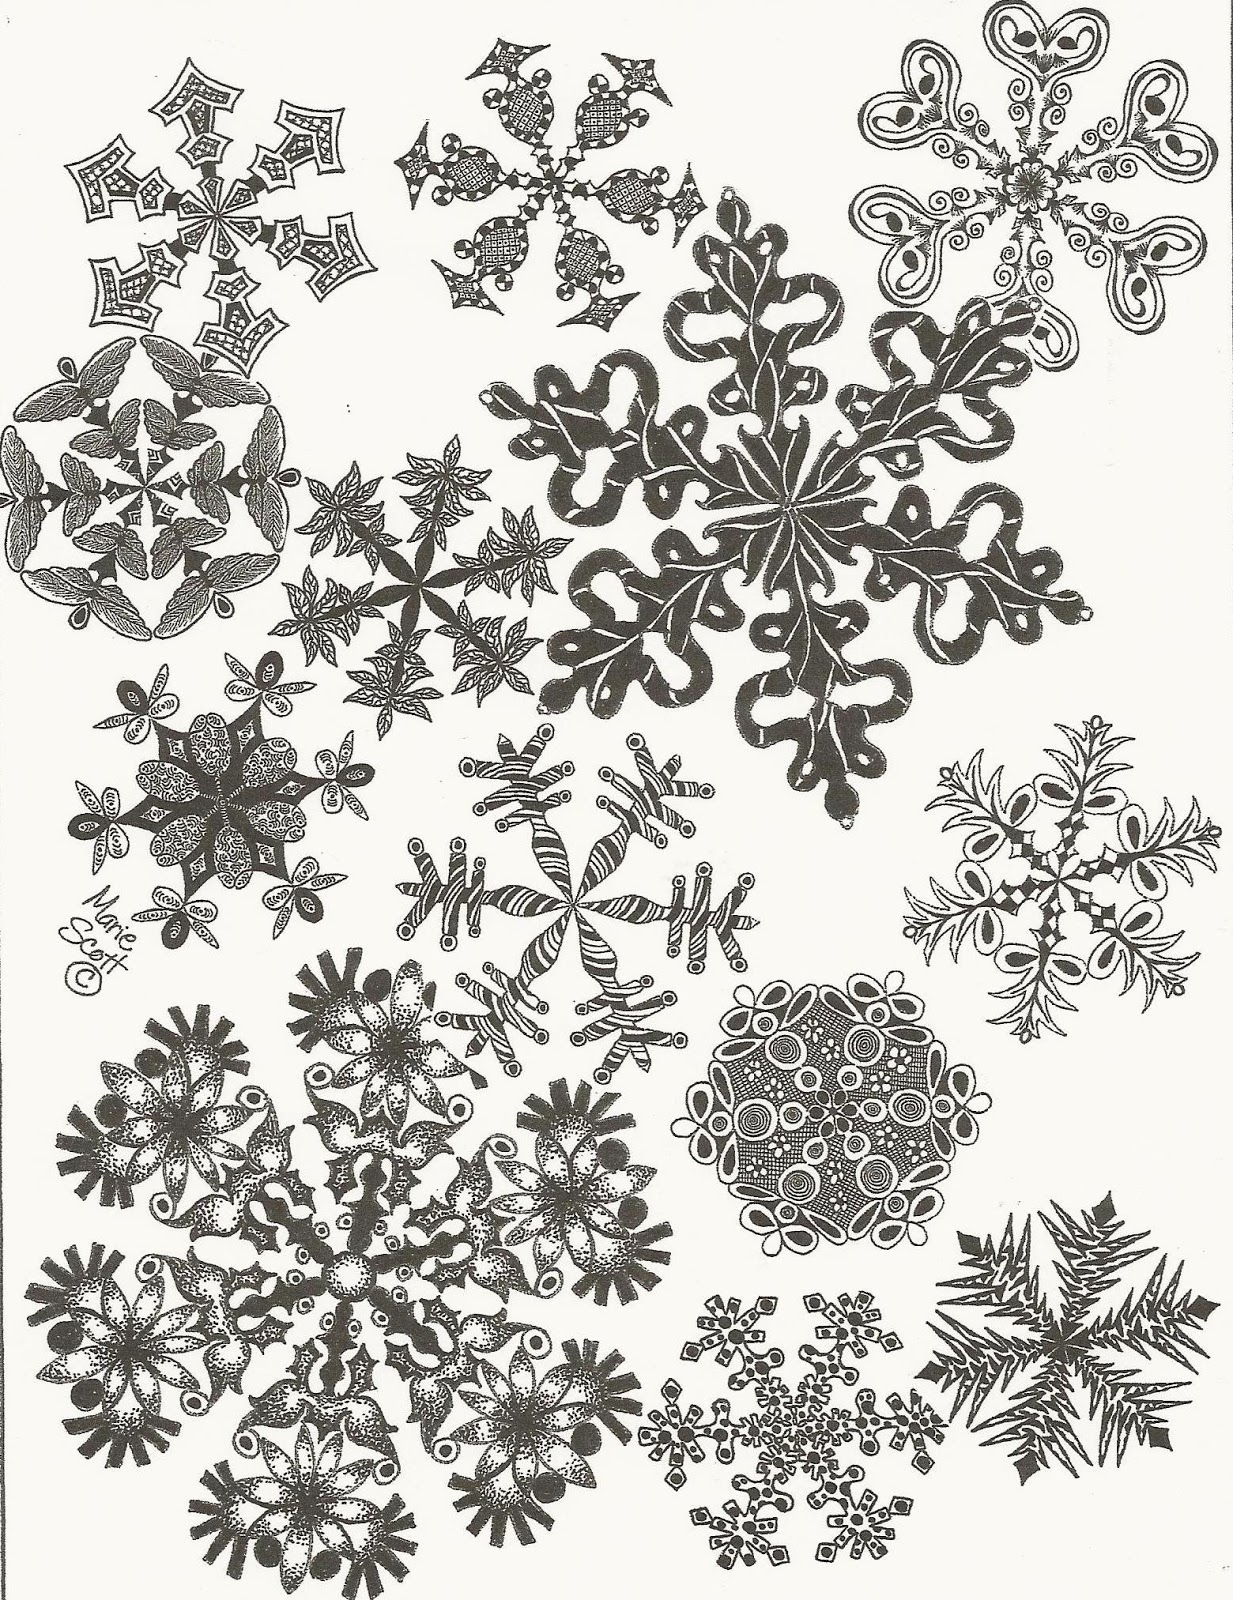 Uncategorized Draw Snowflakes pikadilly charm how to draw snowflakes snowflakes